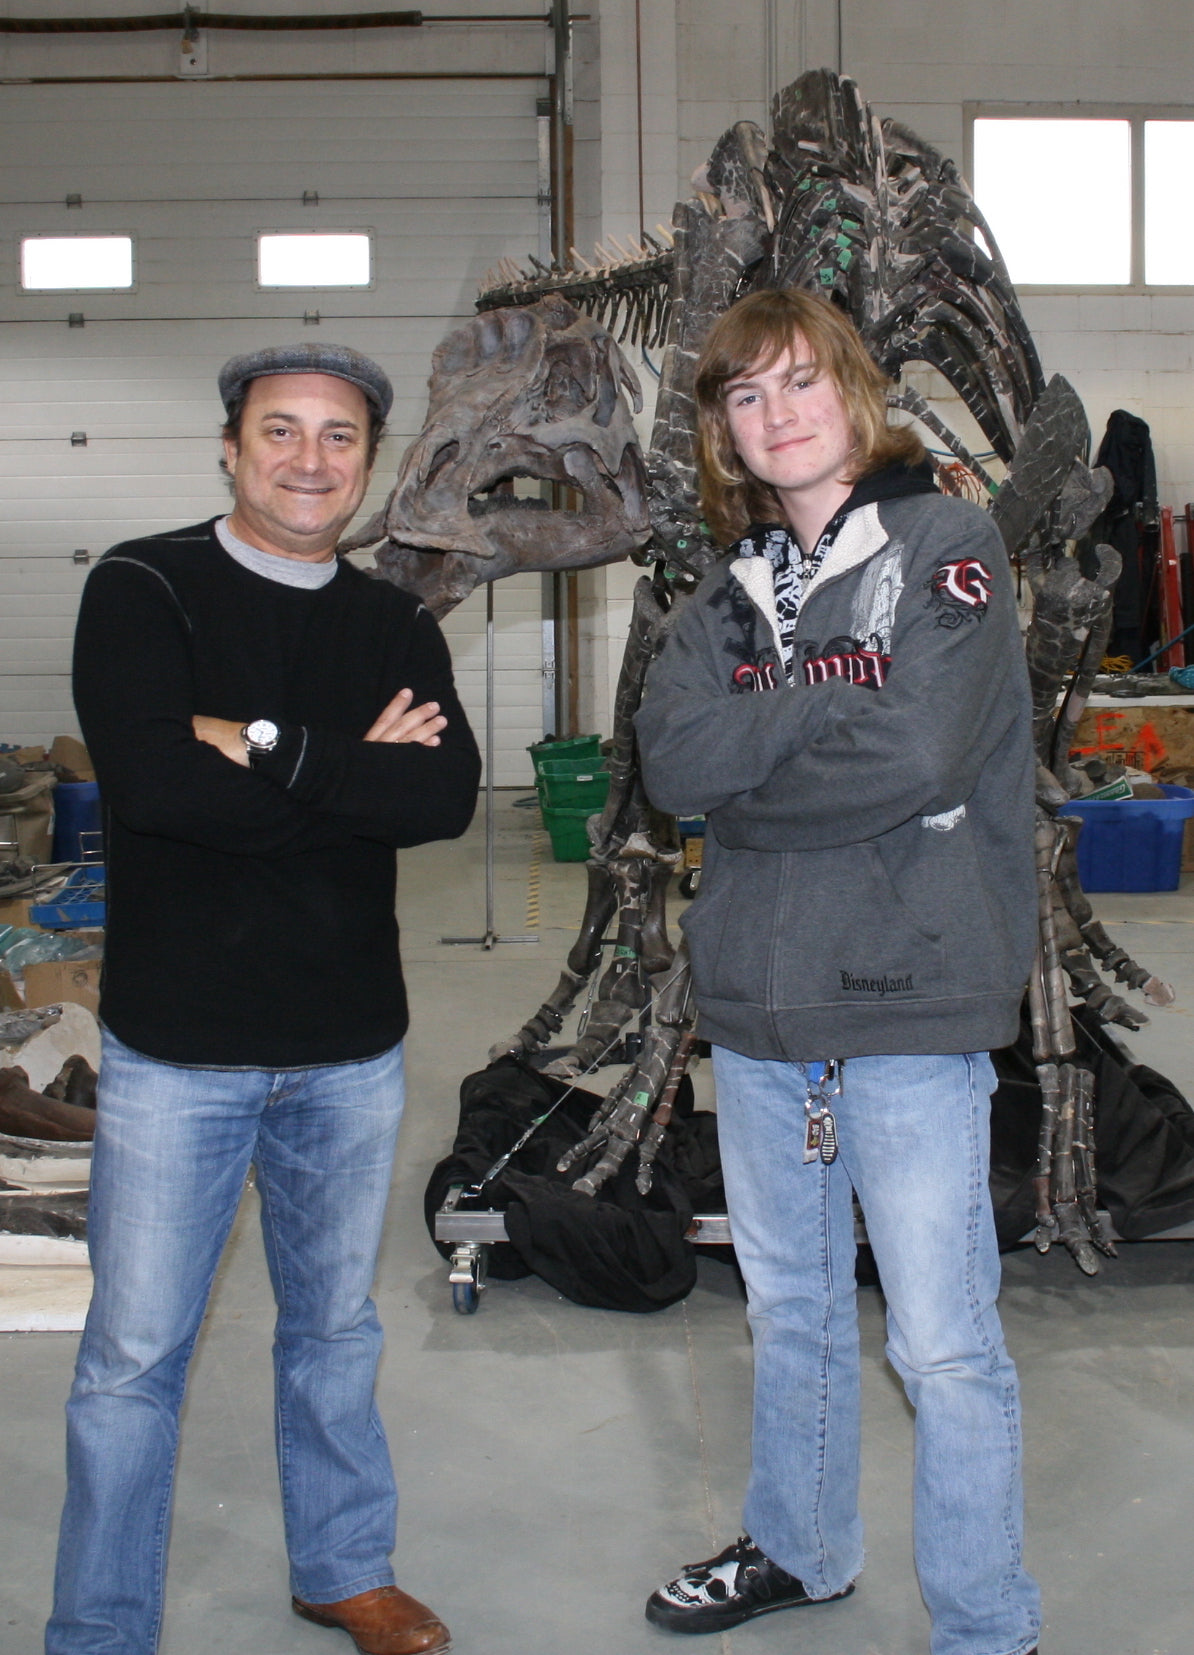 Maiasaura peeblesorum  Kevin Pollak, a big dinosaur lover, came for a tour of our formerly private lab. In the background is a duckbill dinosaur, Maiasaura.      (approx. 70 million years old)